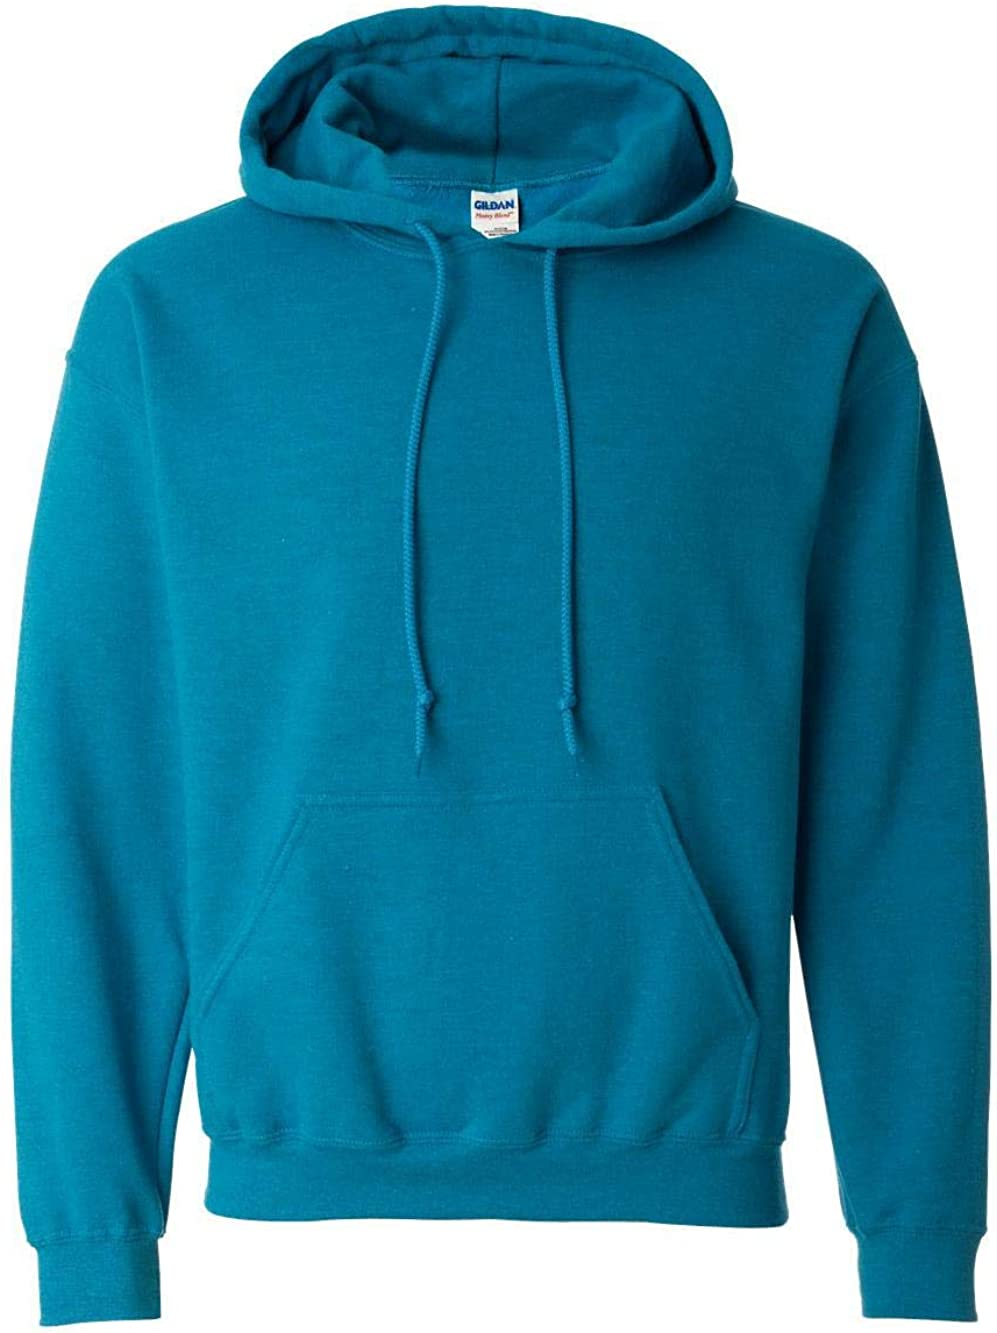 Gildan Heavy Blend Hooded Sweatshirt 18500